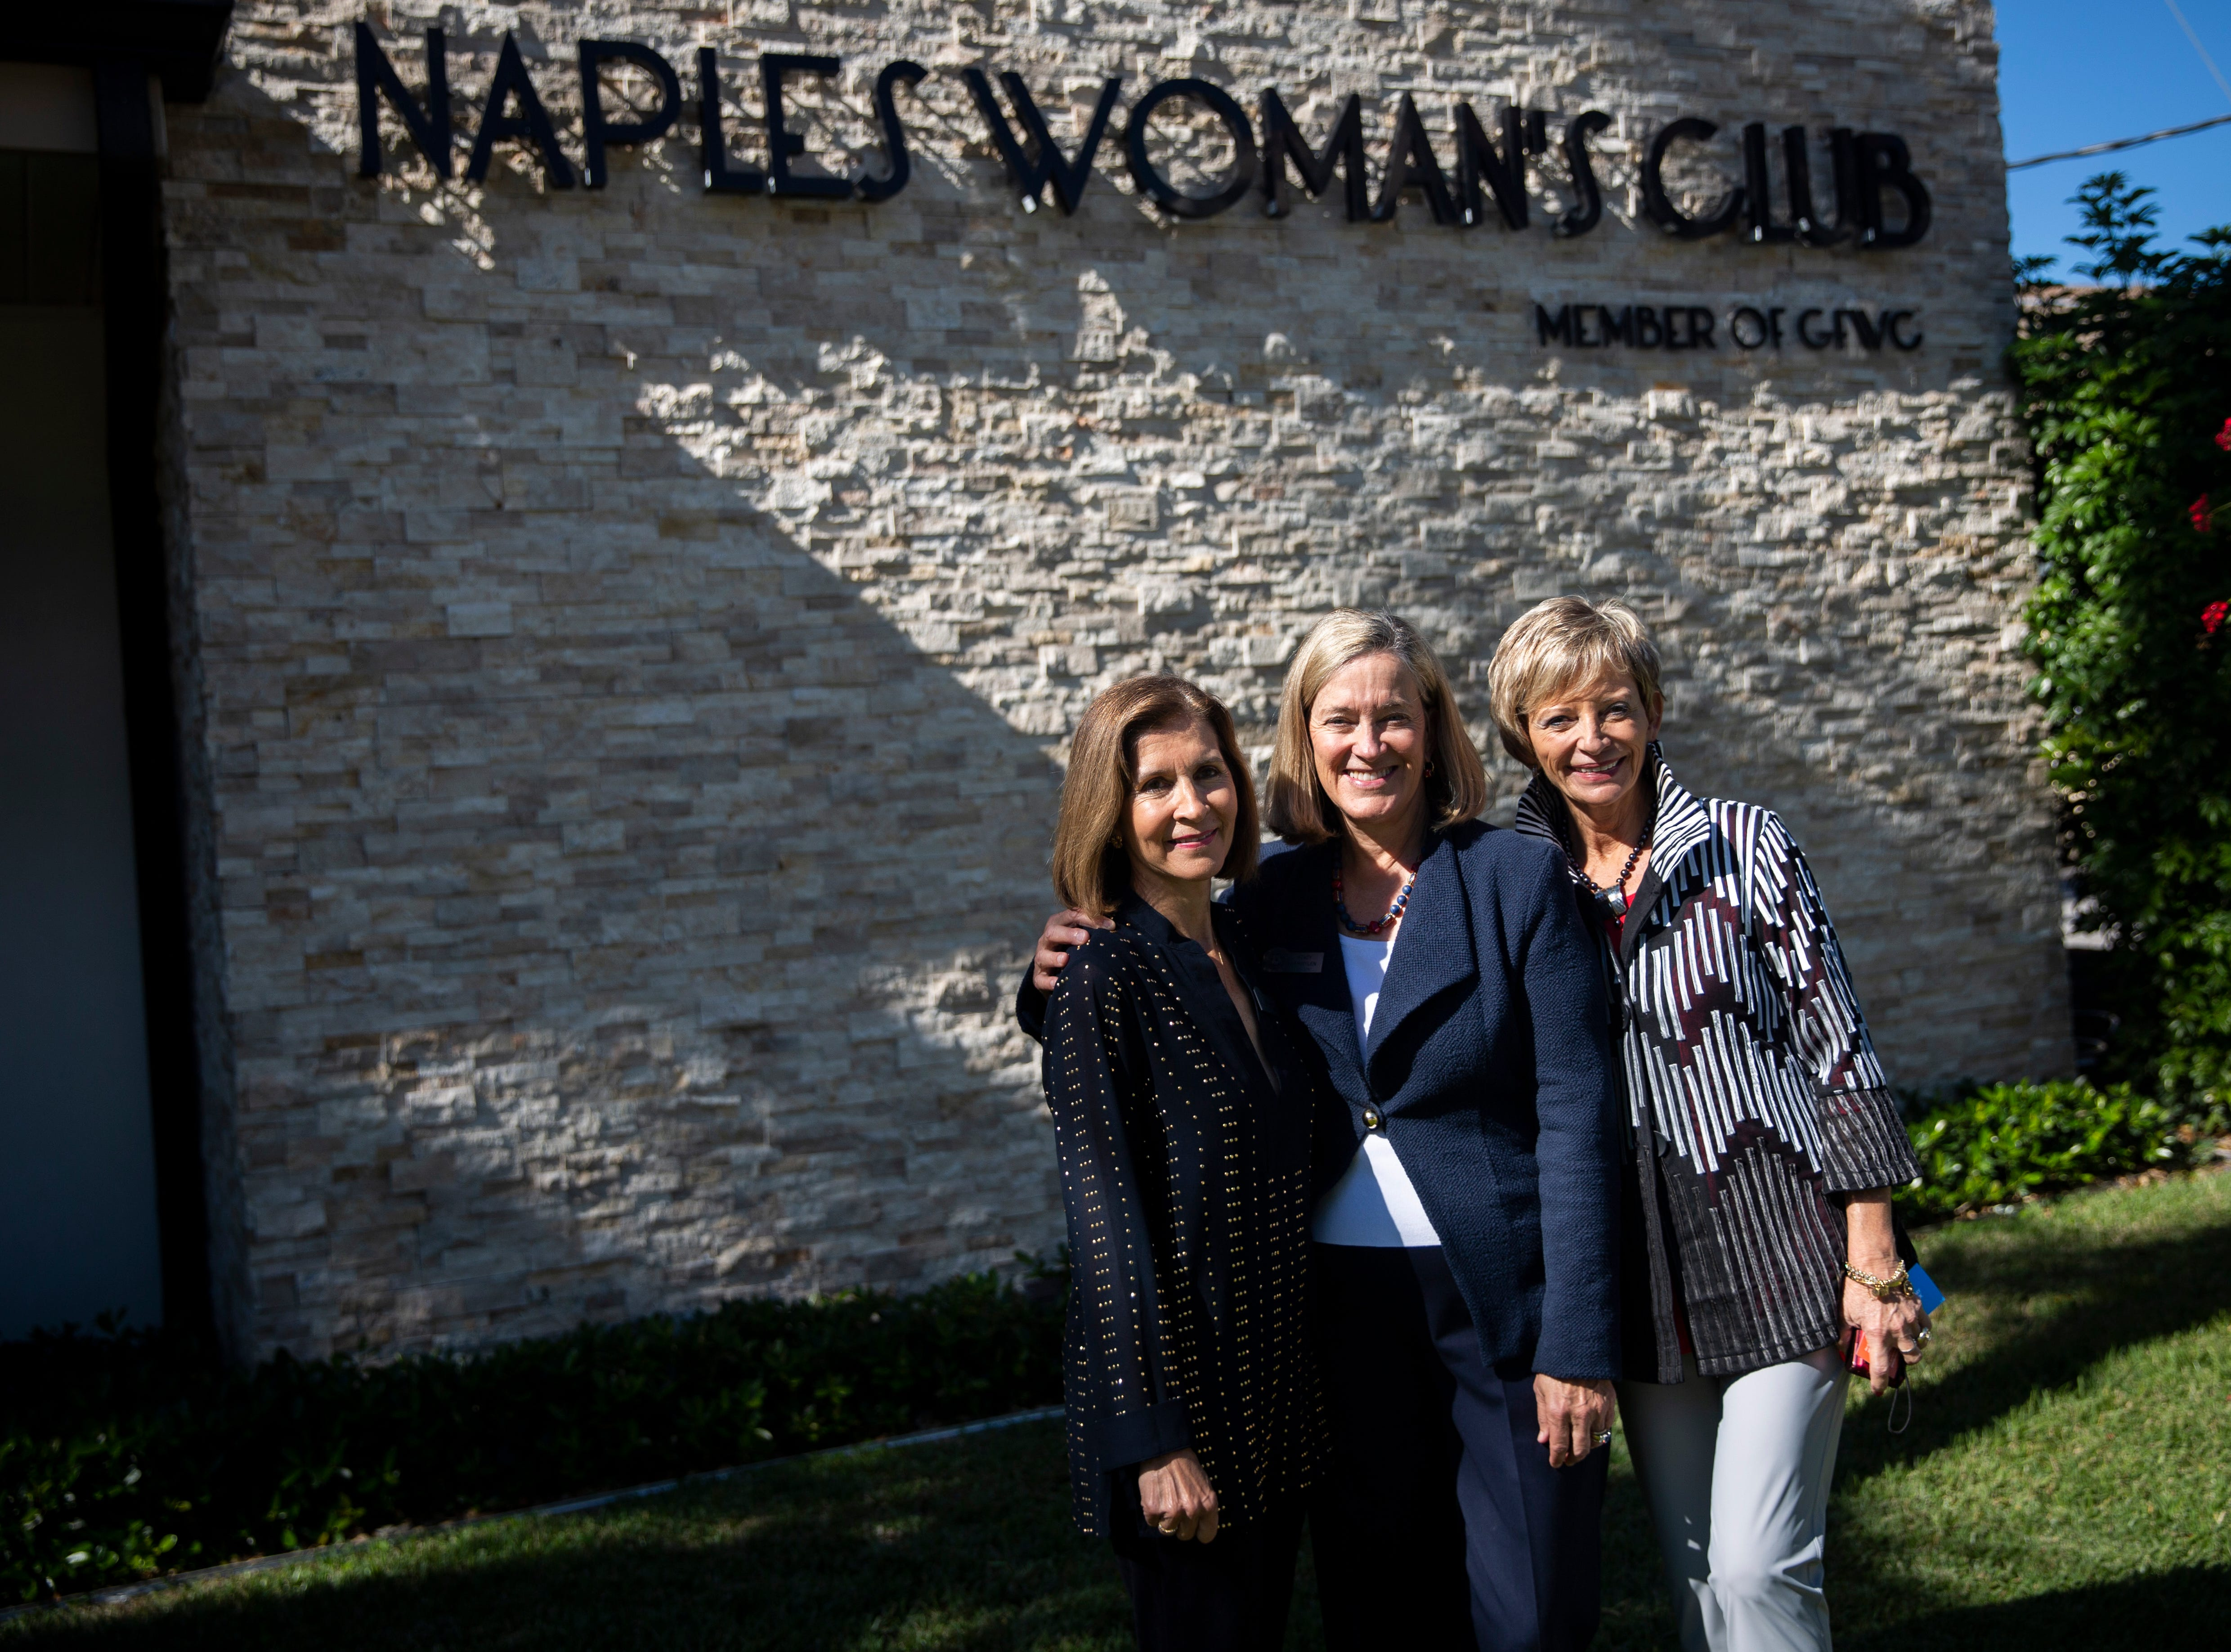 From left to right, Naples Woman's Club Past President Jalna MacLaren, President Stacy Vermylen, and Past President and Chair of the Kitchen Tour Lee Kraus pose for a portrait during the 7th annual Kitchen Tour, hosted by the Naples Woman's Club in Naples on Wednesday, January 16, 2019.